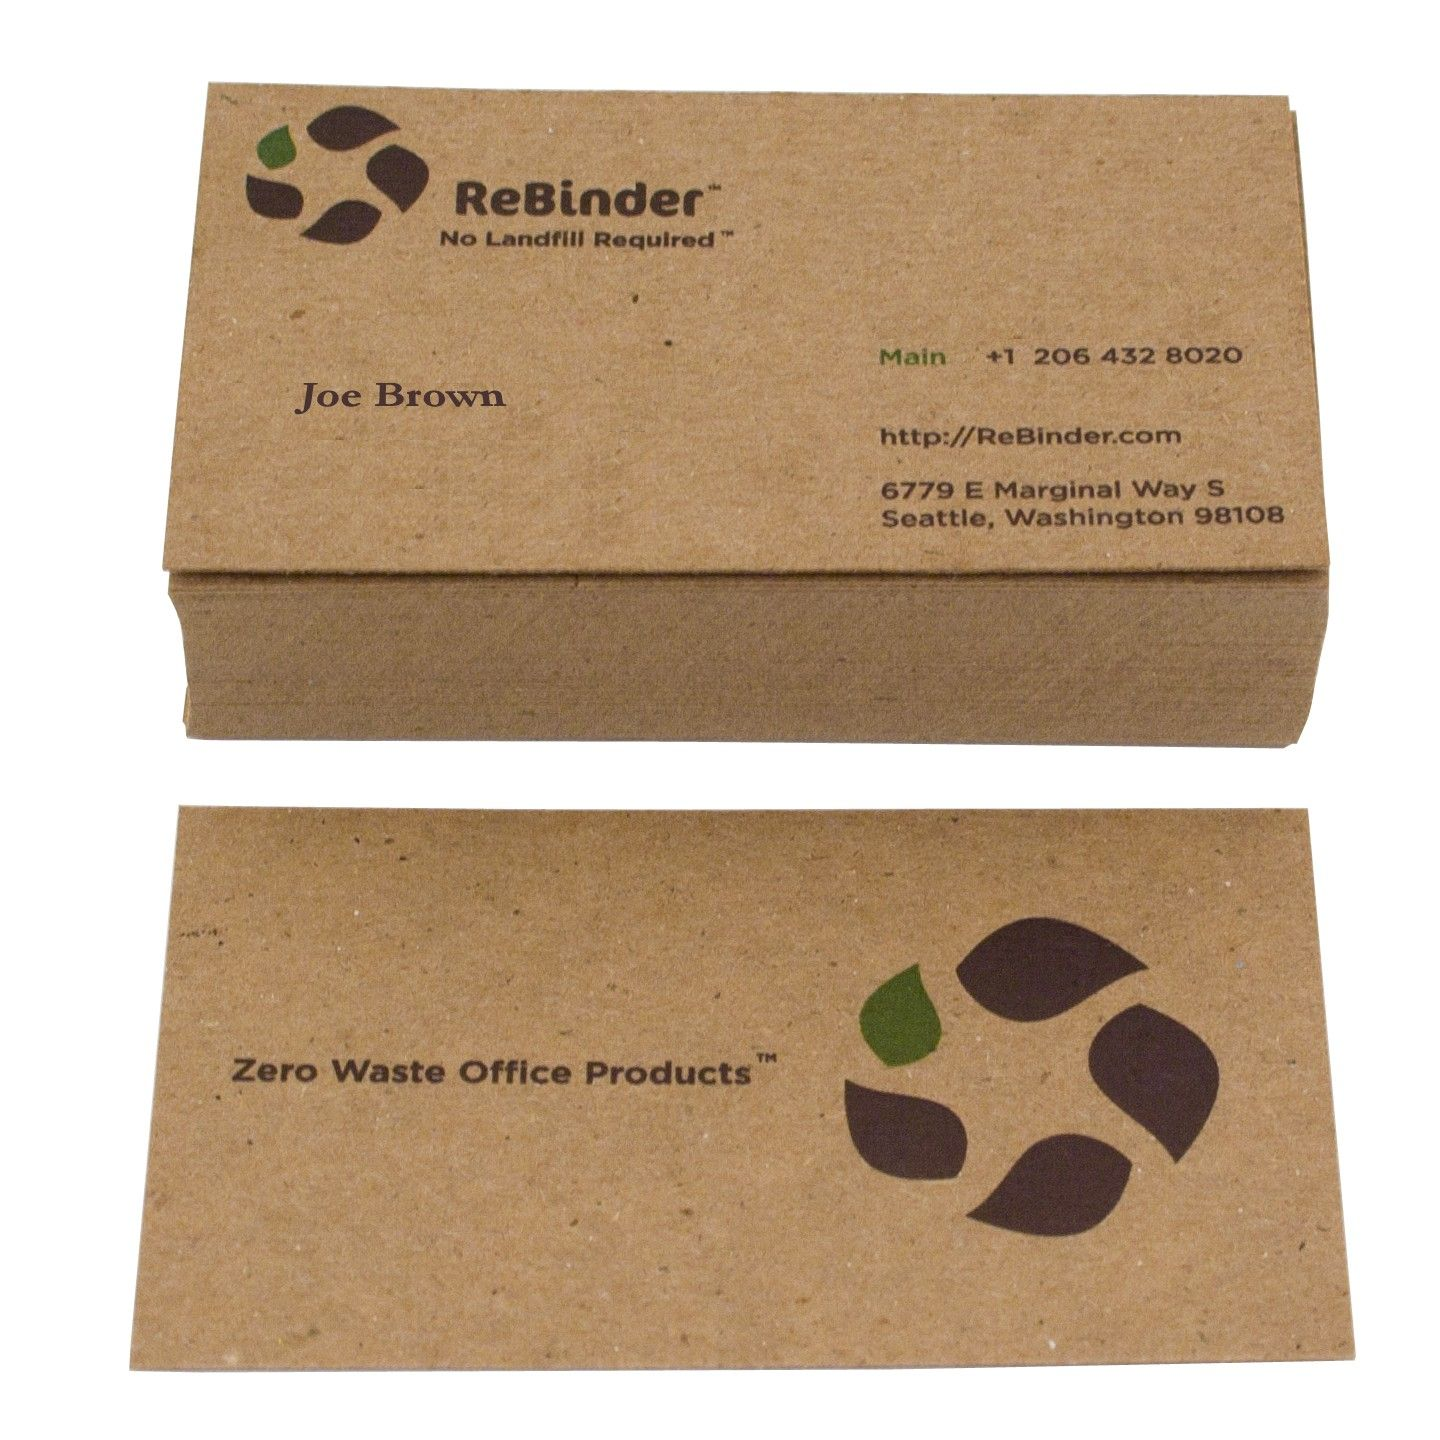 250 Recycled Business Cards 13 pt card stock, 250 @ $60 | Promo ...